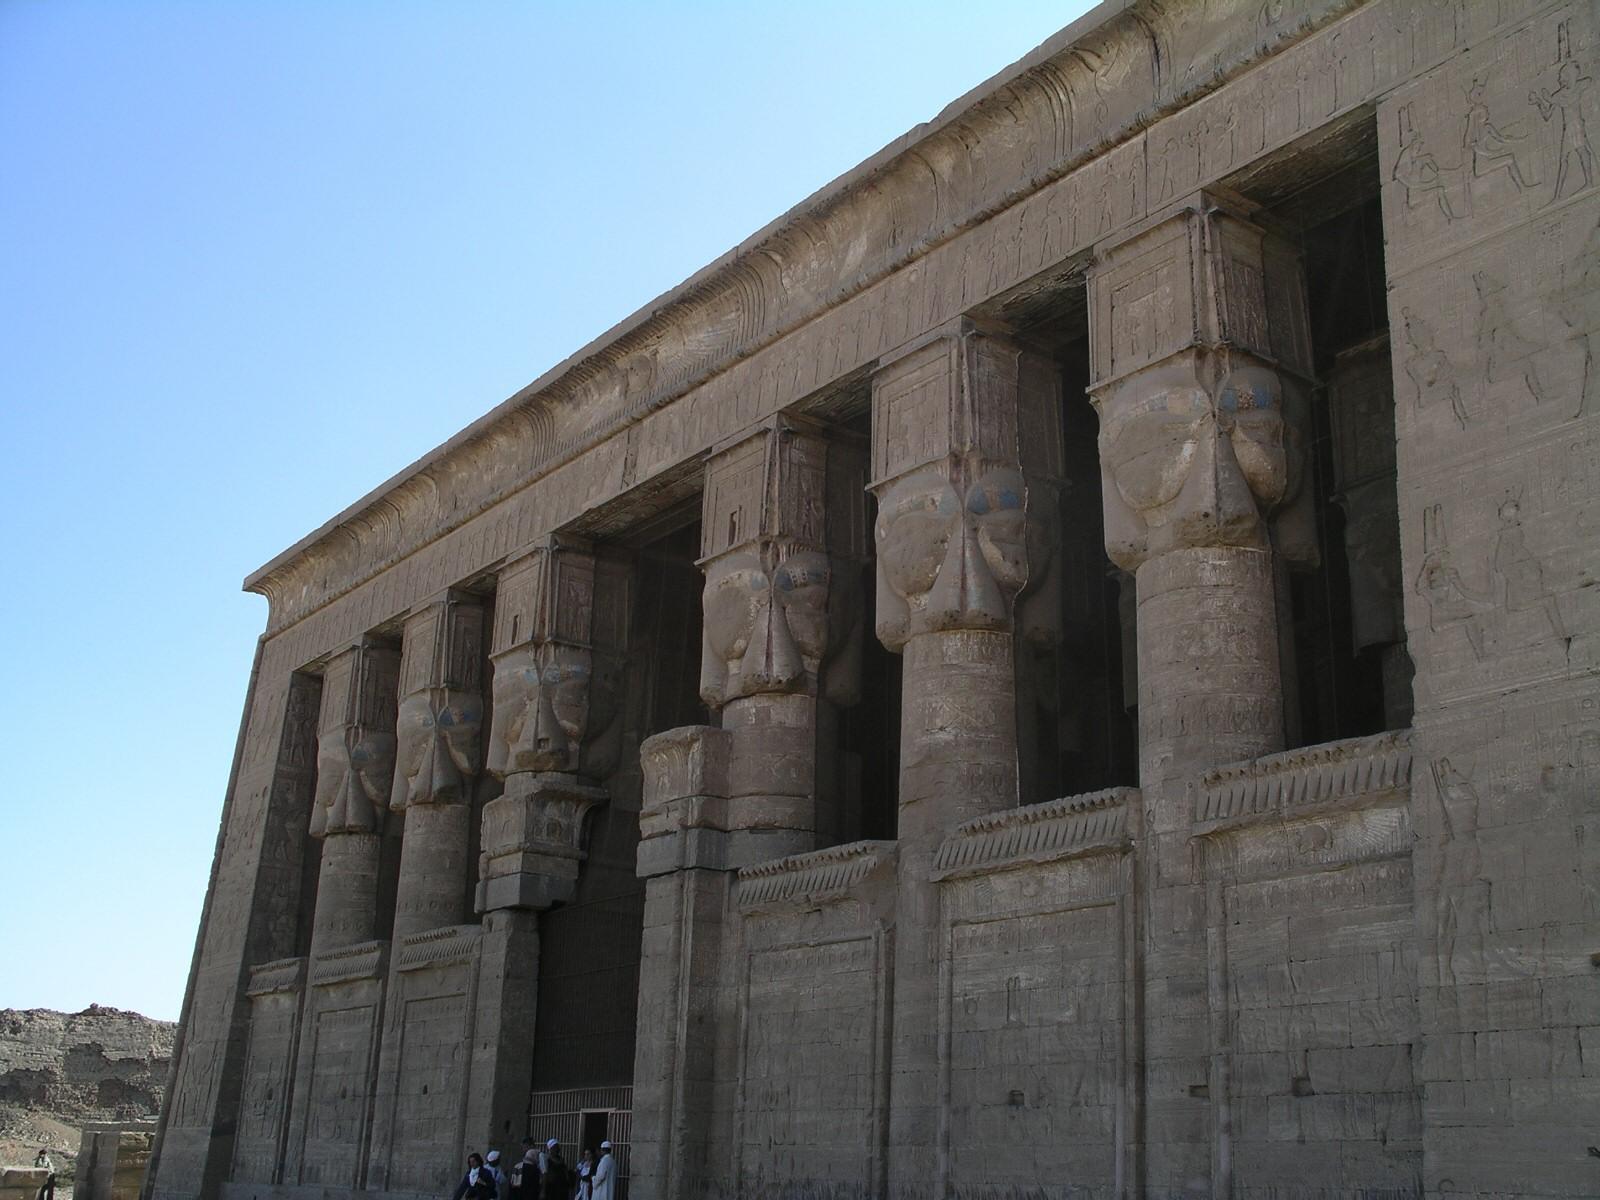 File:Hathor temple Dendera 23 12 2003.jpg